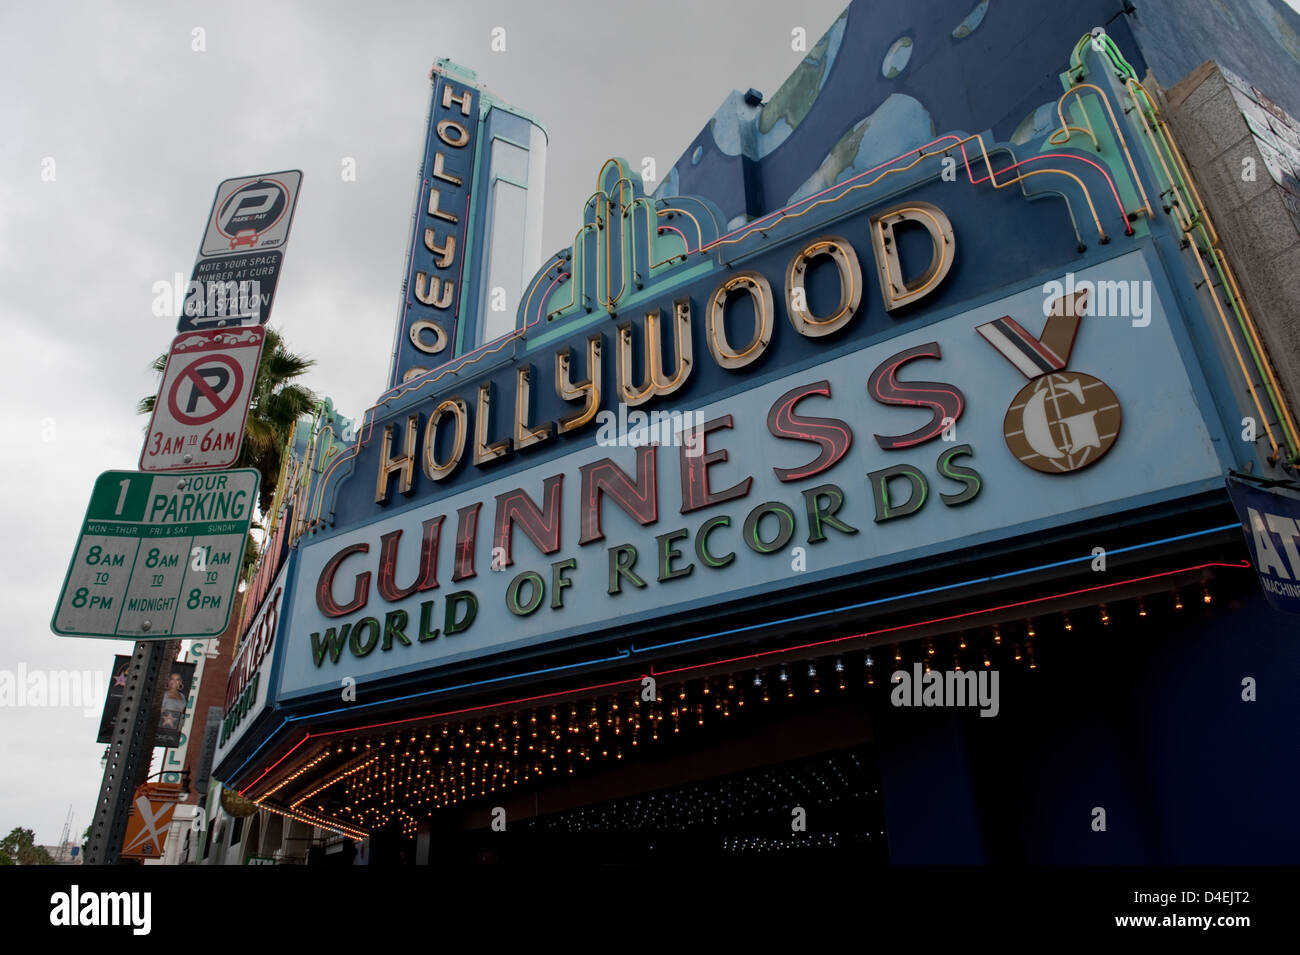 Los Angeles, USA, the entrance to the Hollywood Guinness World of Records Museum - Stock Image